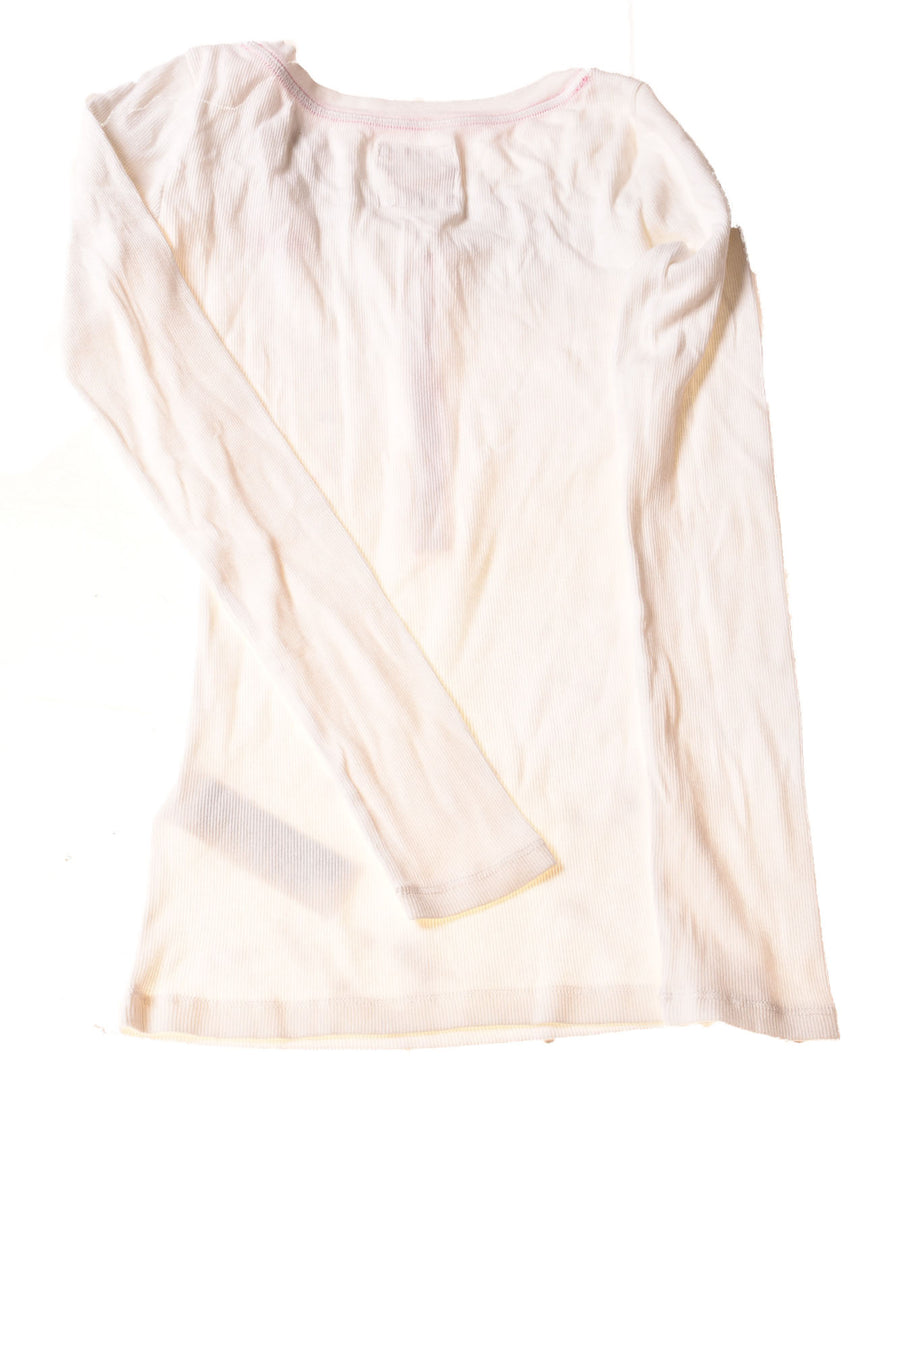 USED Hollister Women's Top X-Small White